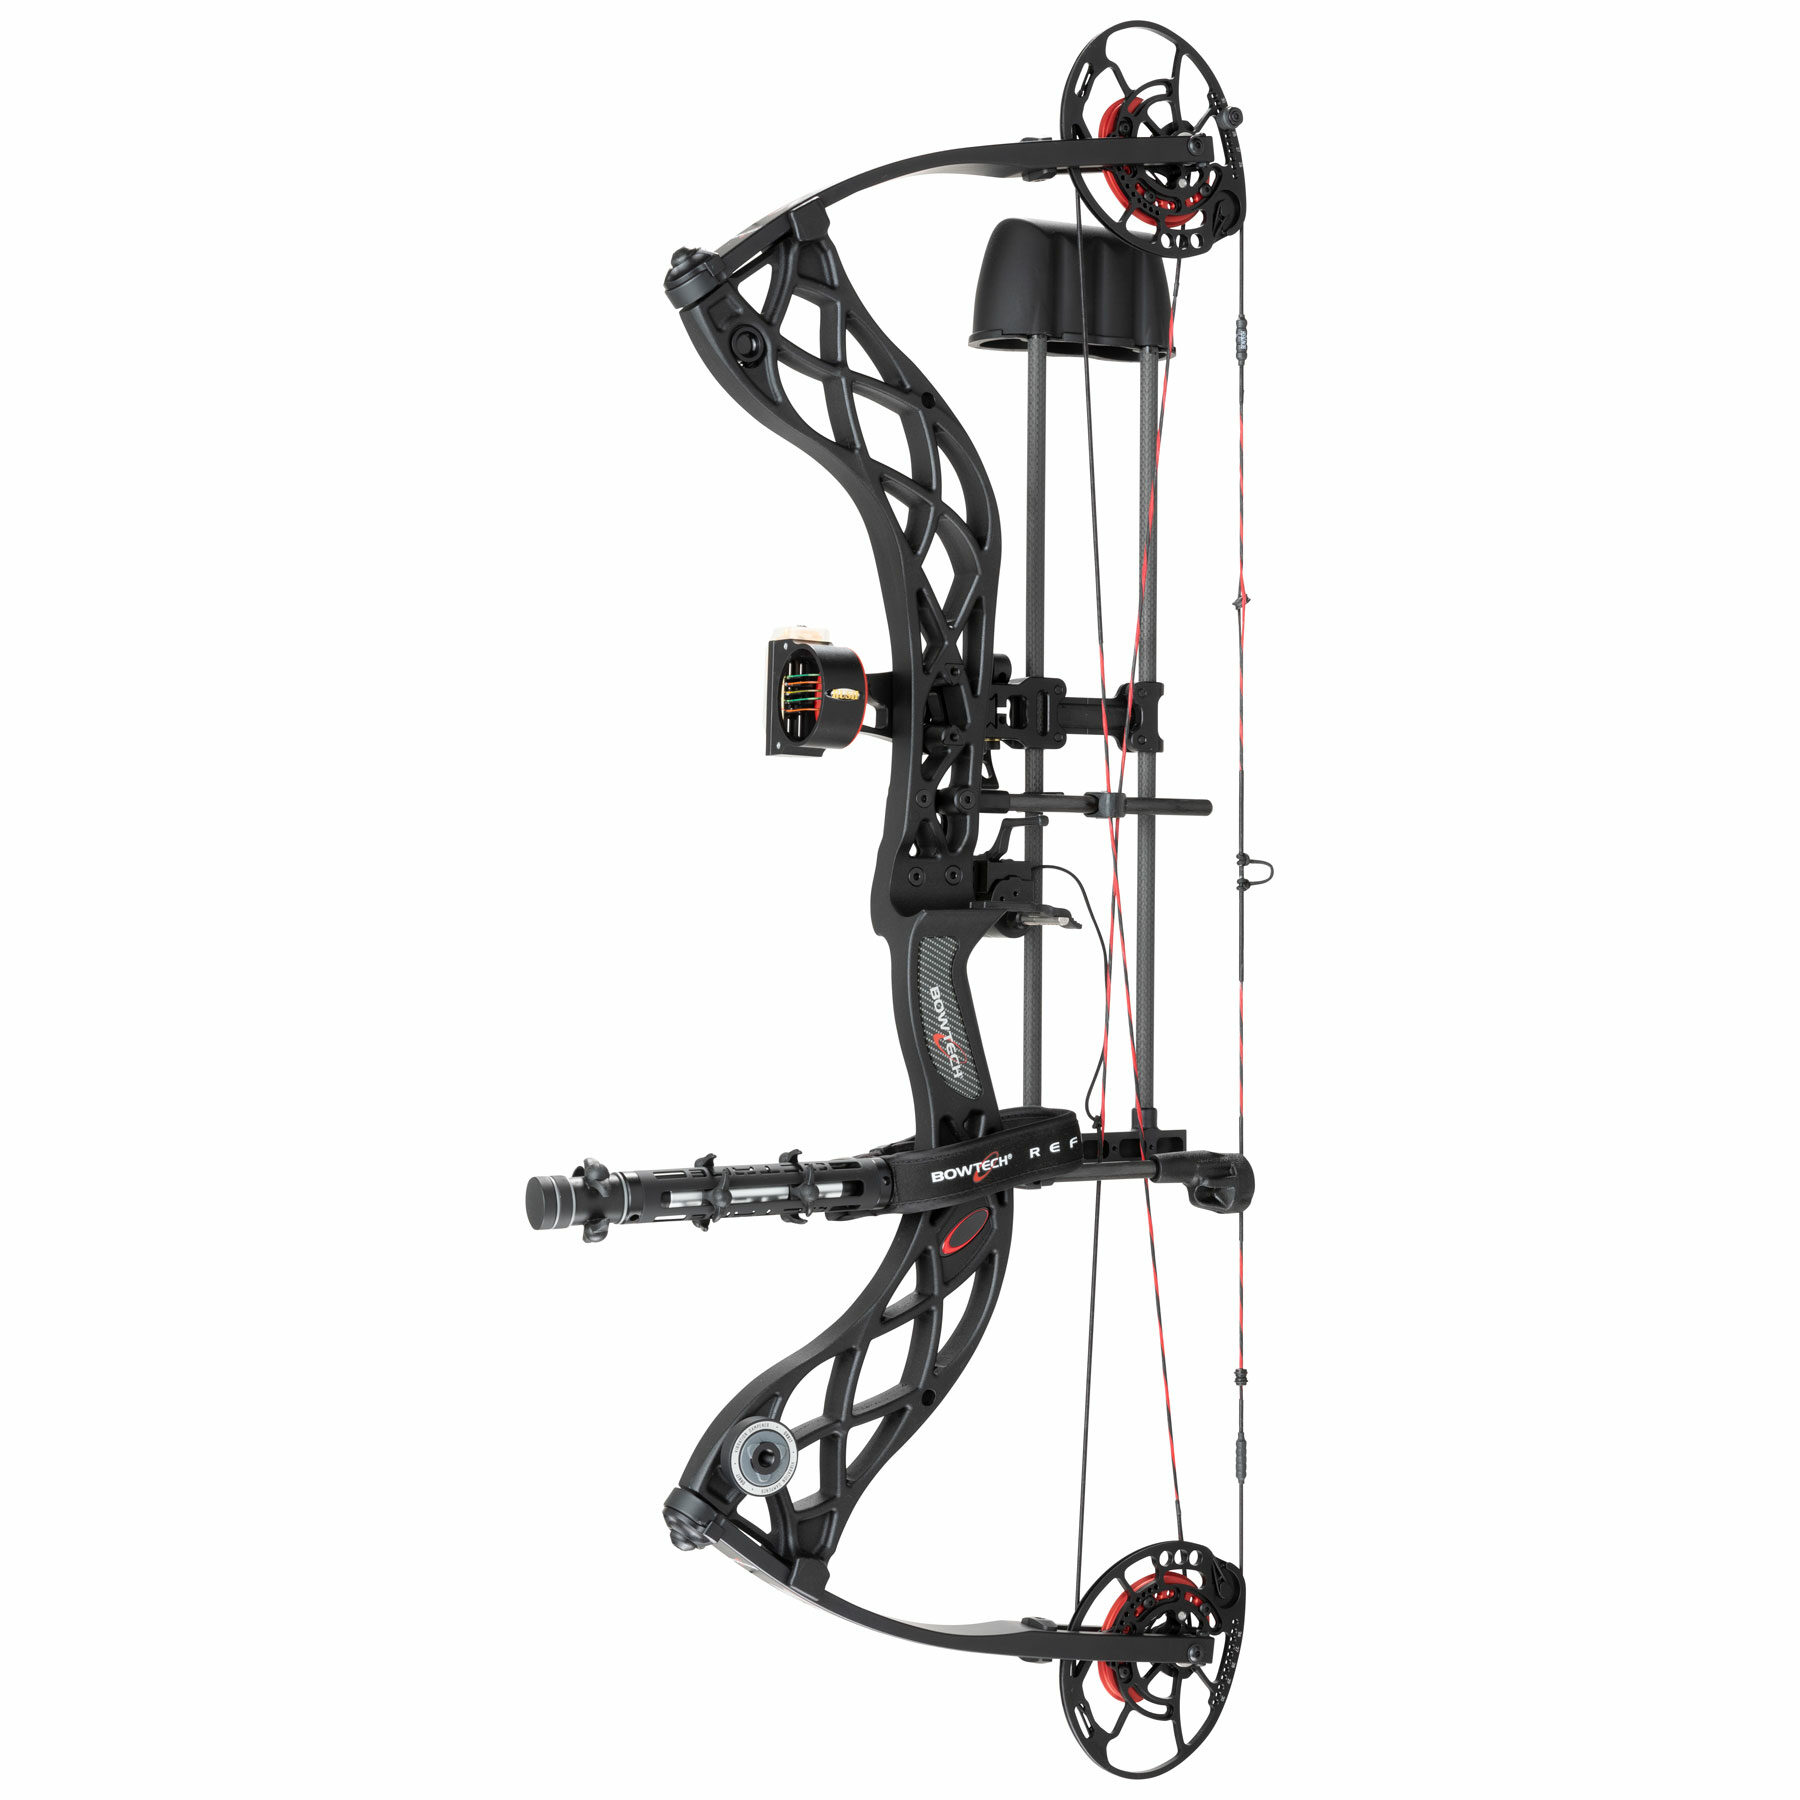 Carbon Zion DLX black archery compound bow